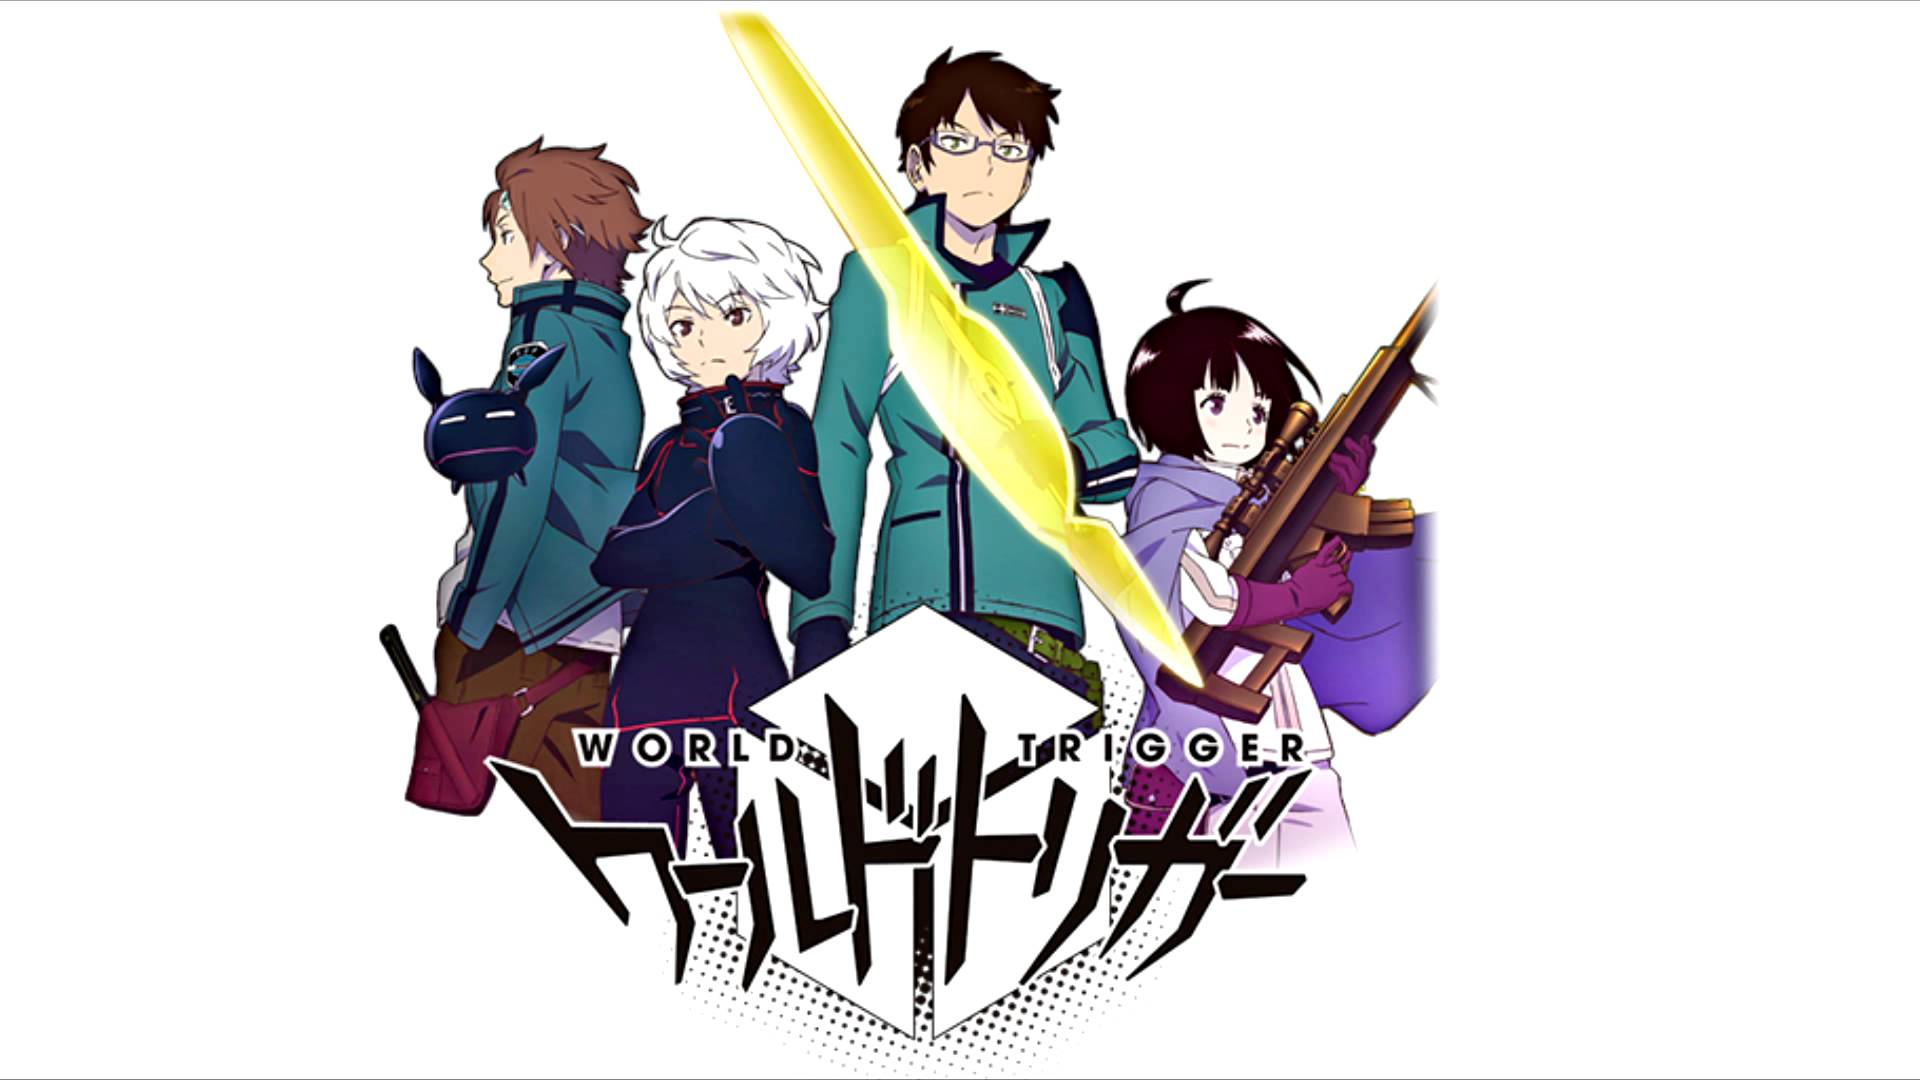 Exelwallz Anime Wall World: World Trigger Wallpaper 5